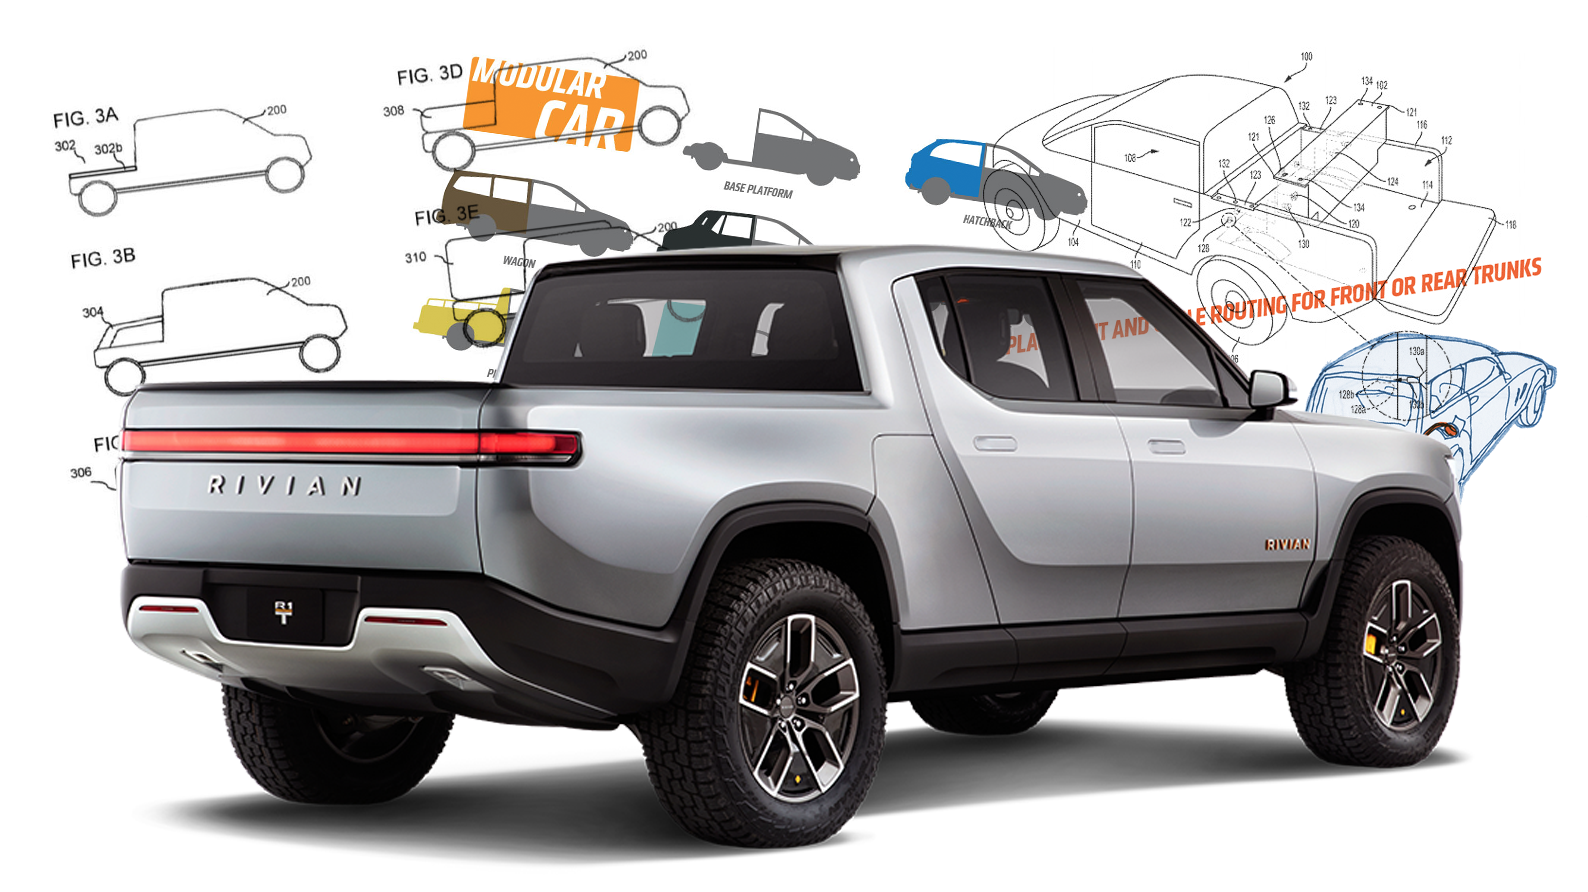 Electric Truck Startup Rivian's Patents Look a Lot Like My Idea for Modular Cars